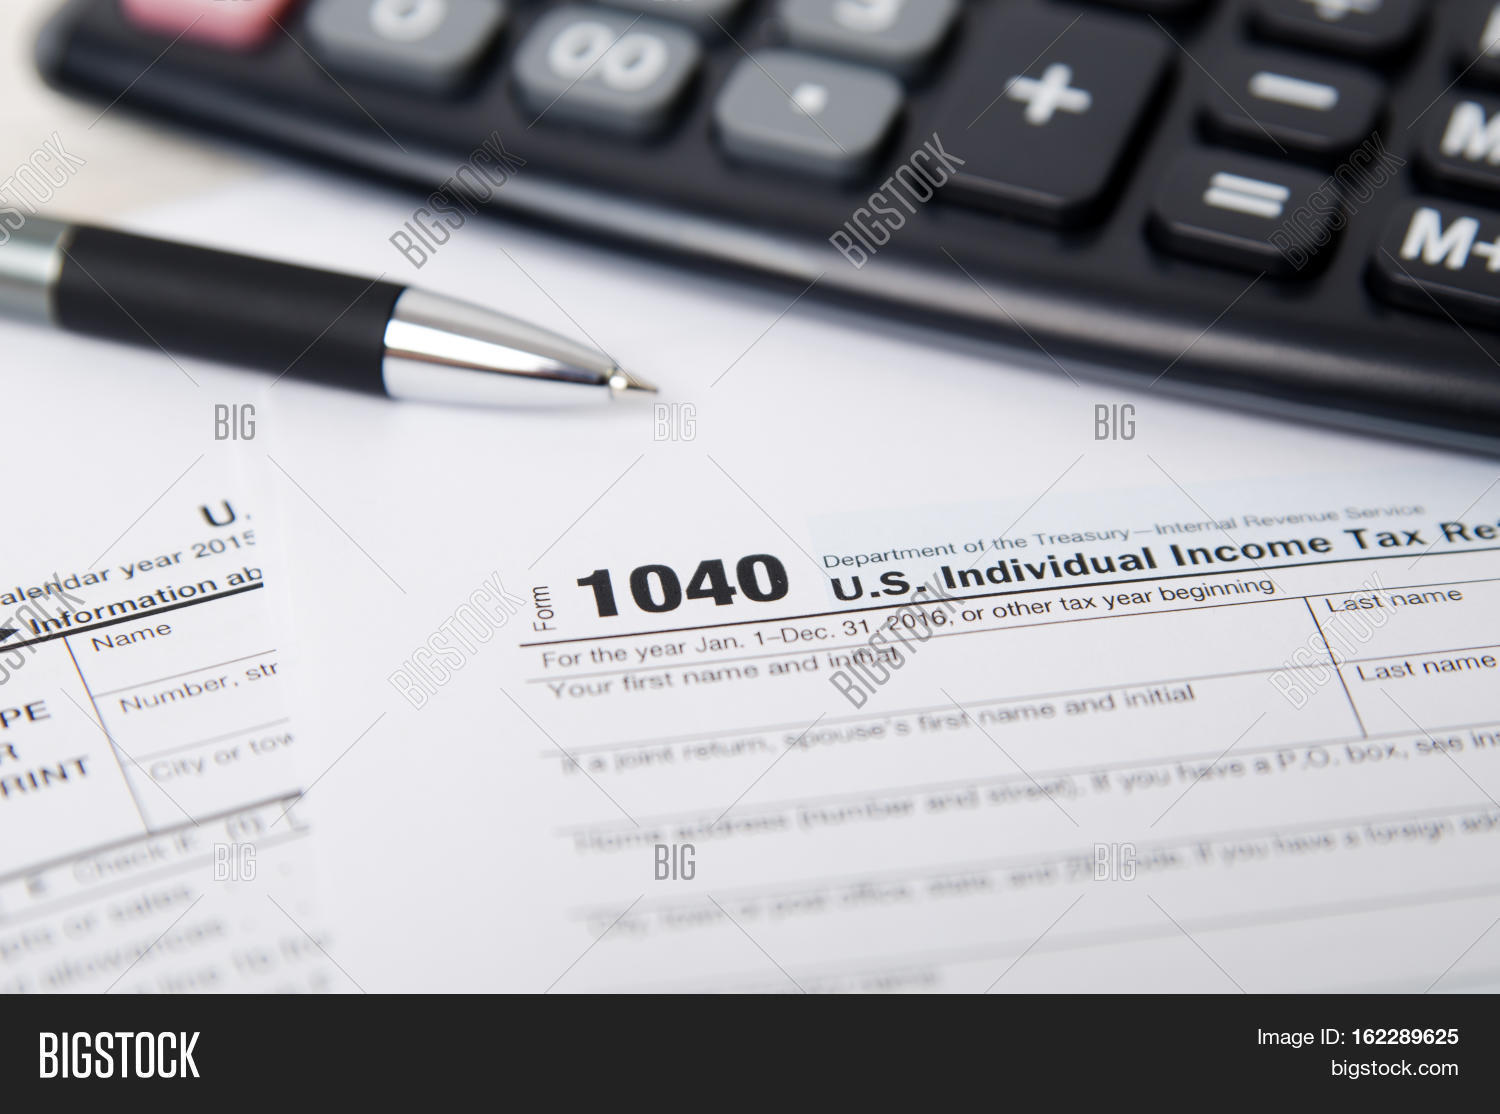 Us tax form 1040 pen calculator image photo bigstock for 1040 tax table calculator